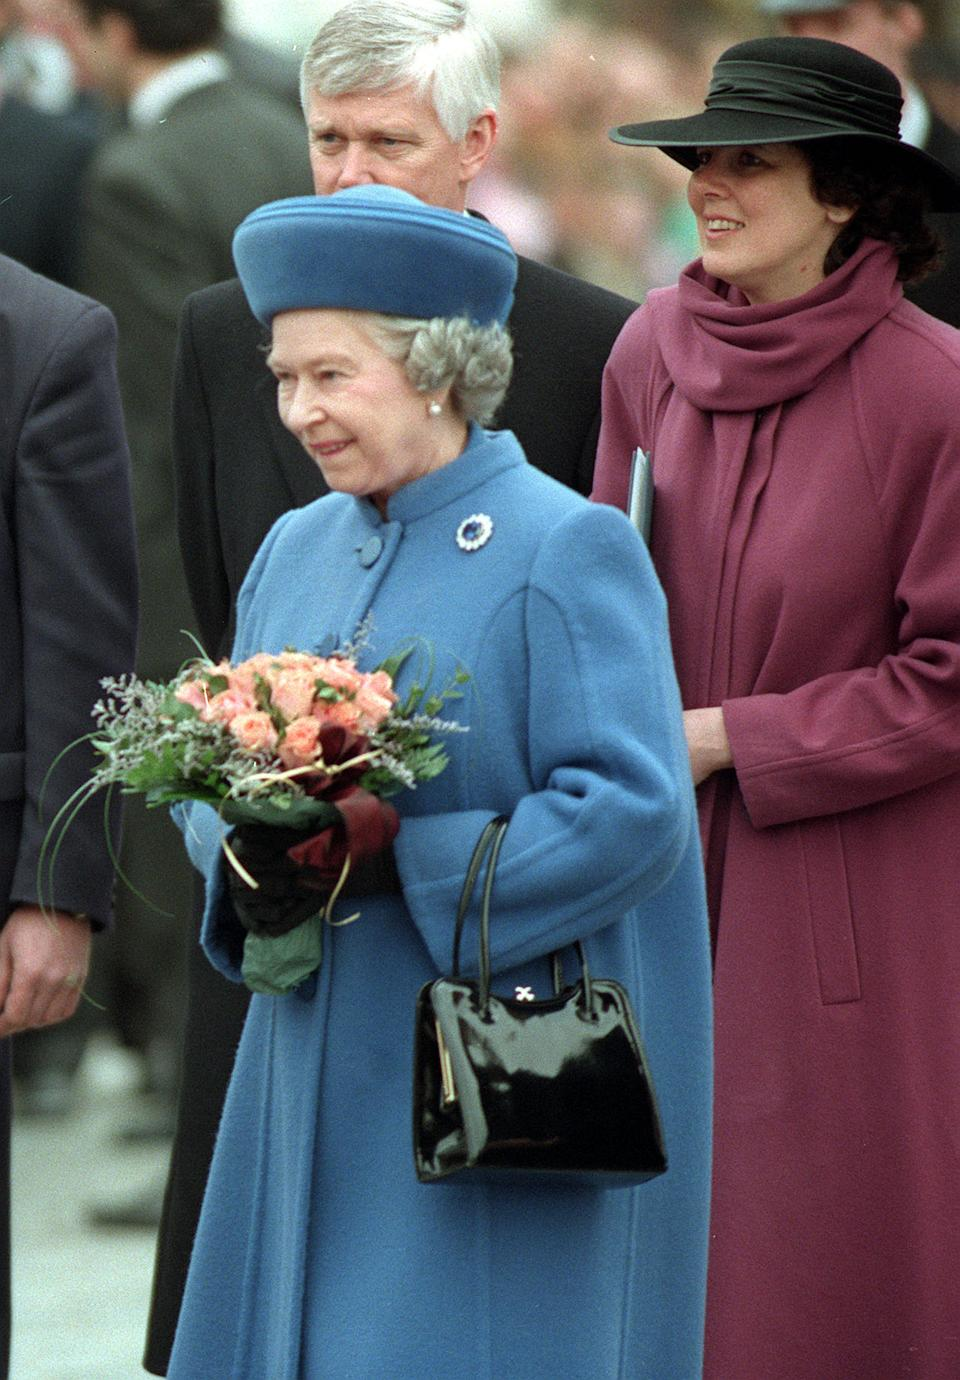 The Queen meets Czechs during her visit to Prague, their capital. The Queen and the Duke of Edinburgh later left the Czech Republic after a  three day visit. The Queen is wearing the Prince Albert Brooch, crafted from Diamonds and a large Sapphire, a gift from Prince Albert of Saxe-Coburg-Gotha to Queen Victoria on the eve of their wedding in 1840.   (Photo by John Stillwell - PA Images/PA Images via Getty Images)